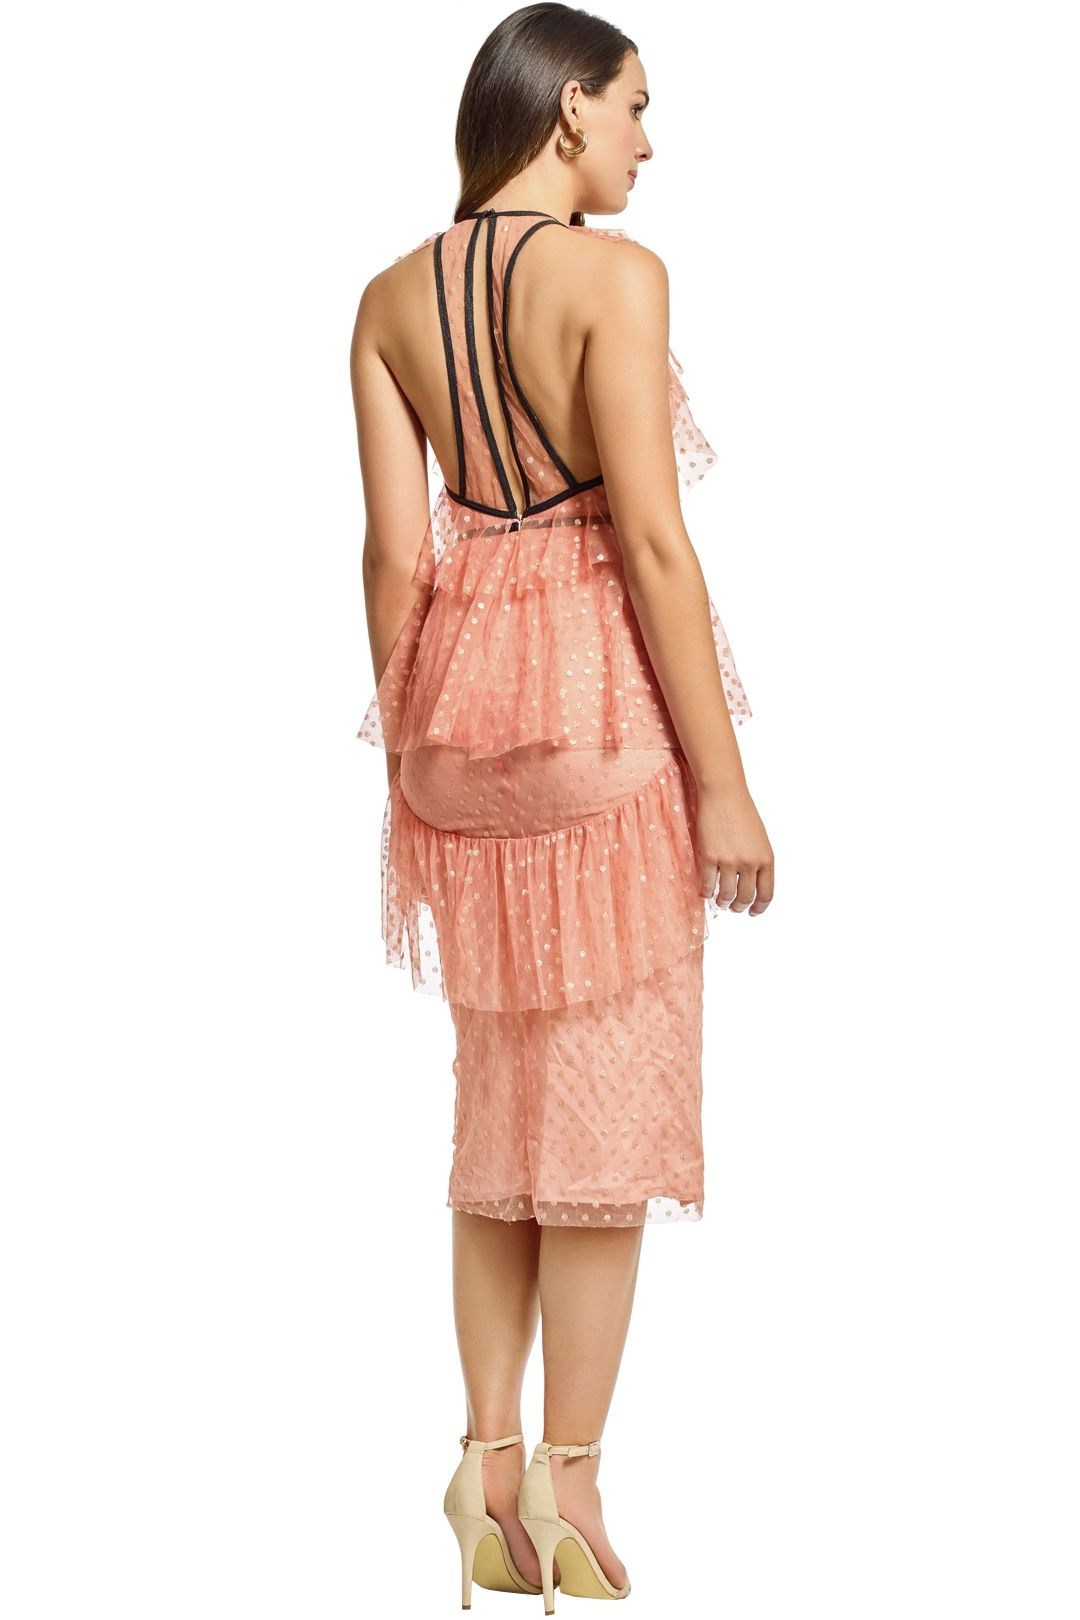 Alice McCall - You and Me Dress - Rose - Back